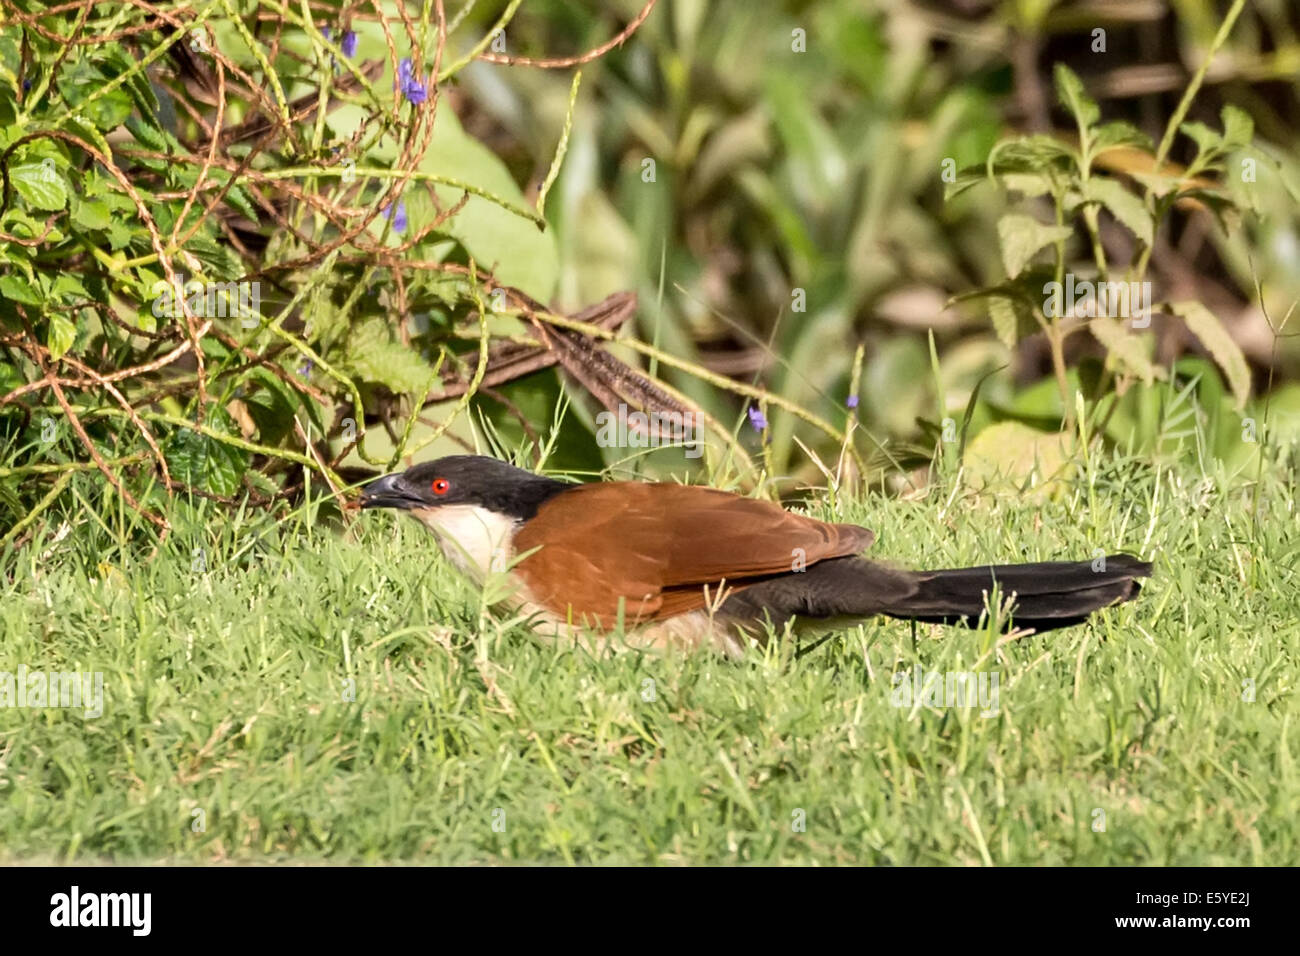 Senegal coucal - Stock Image